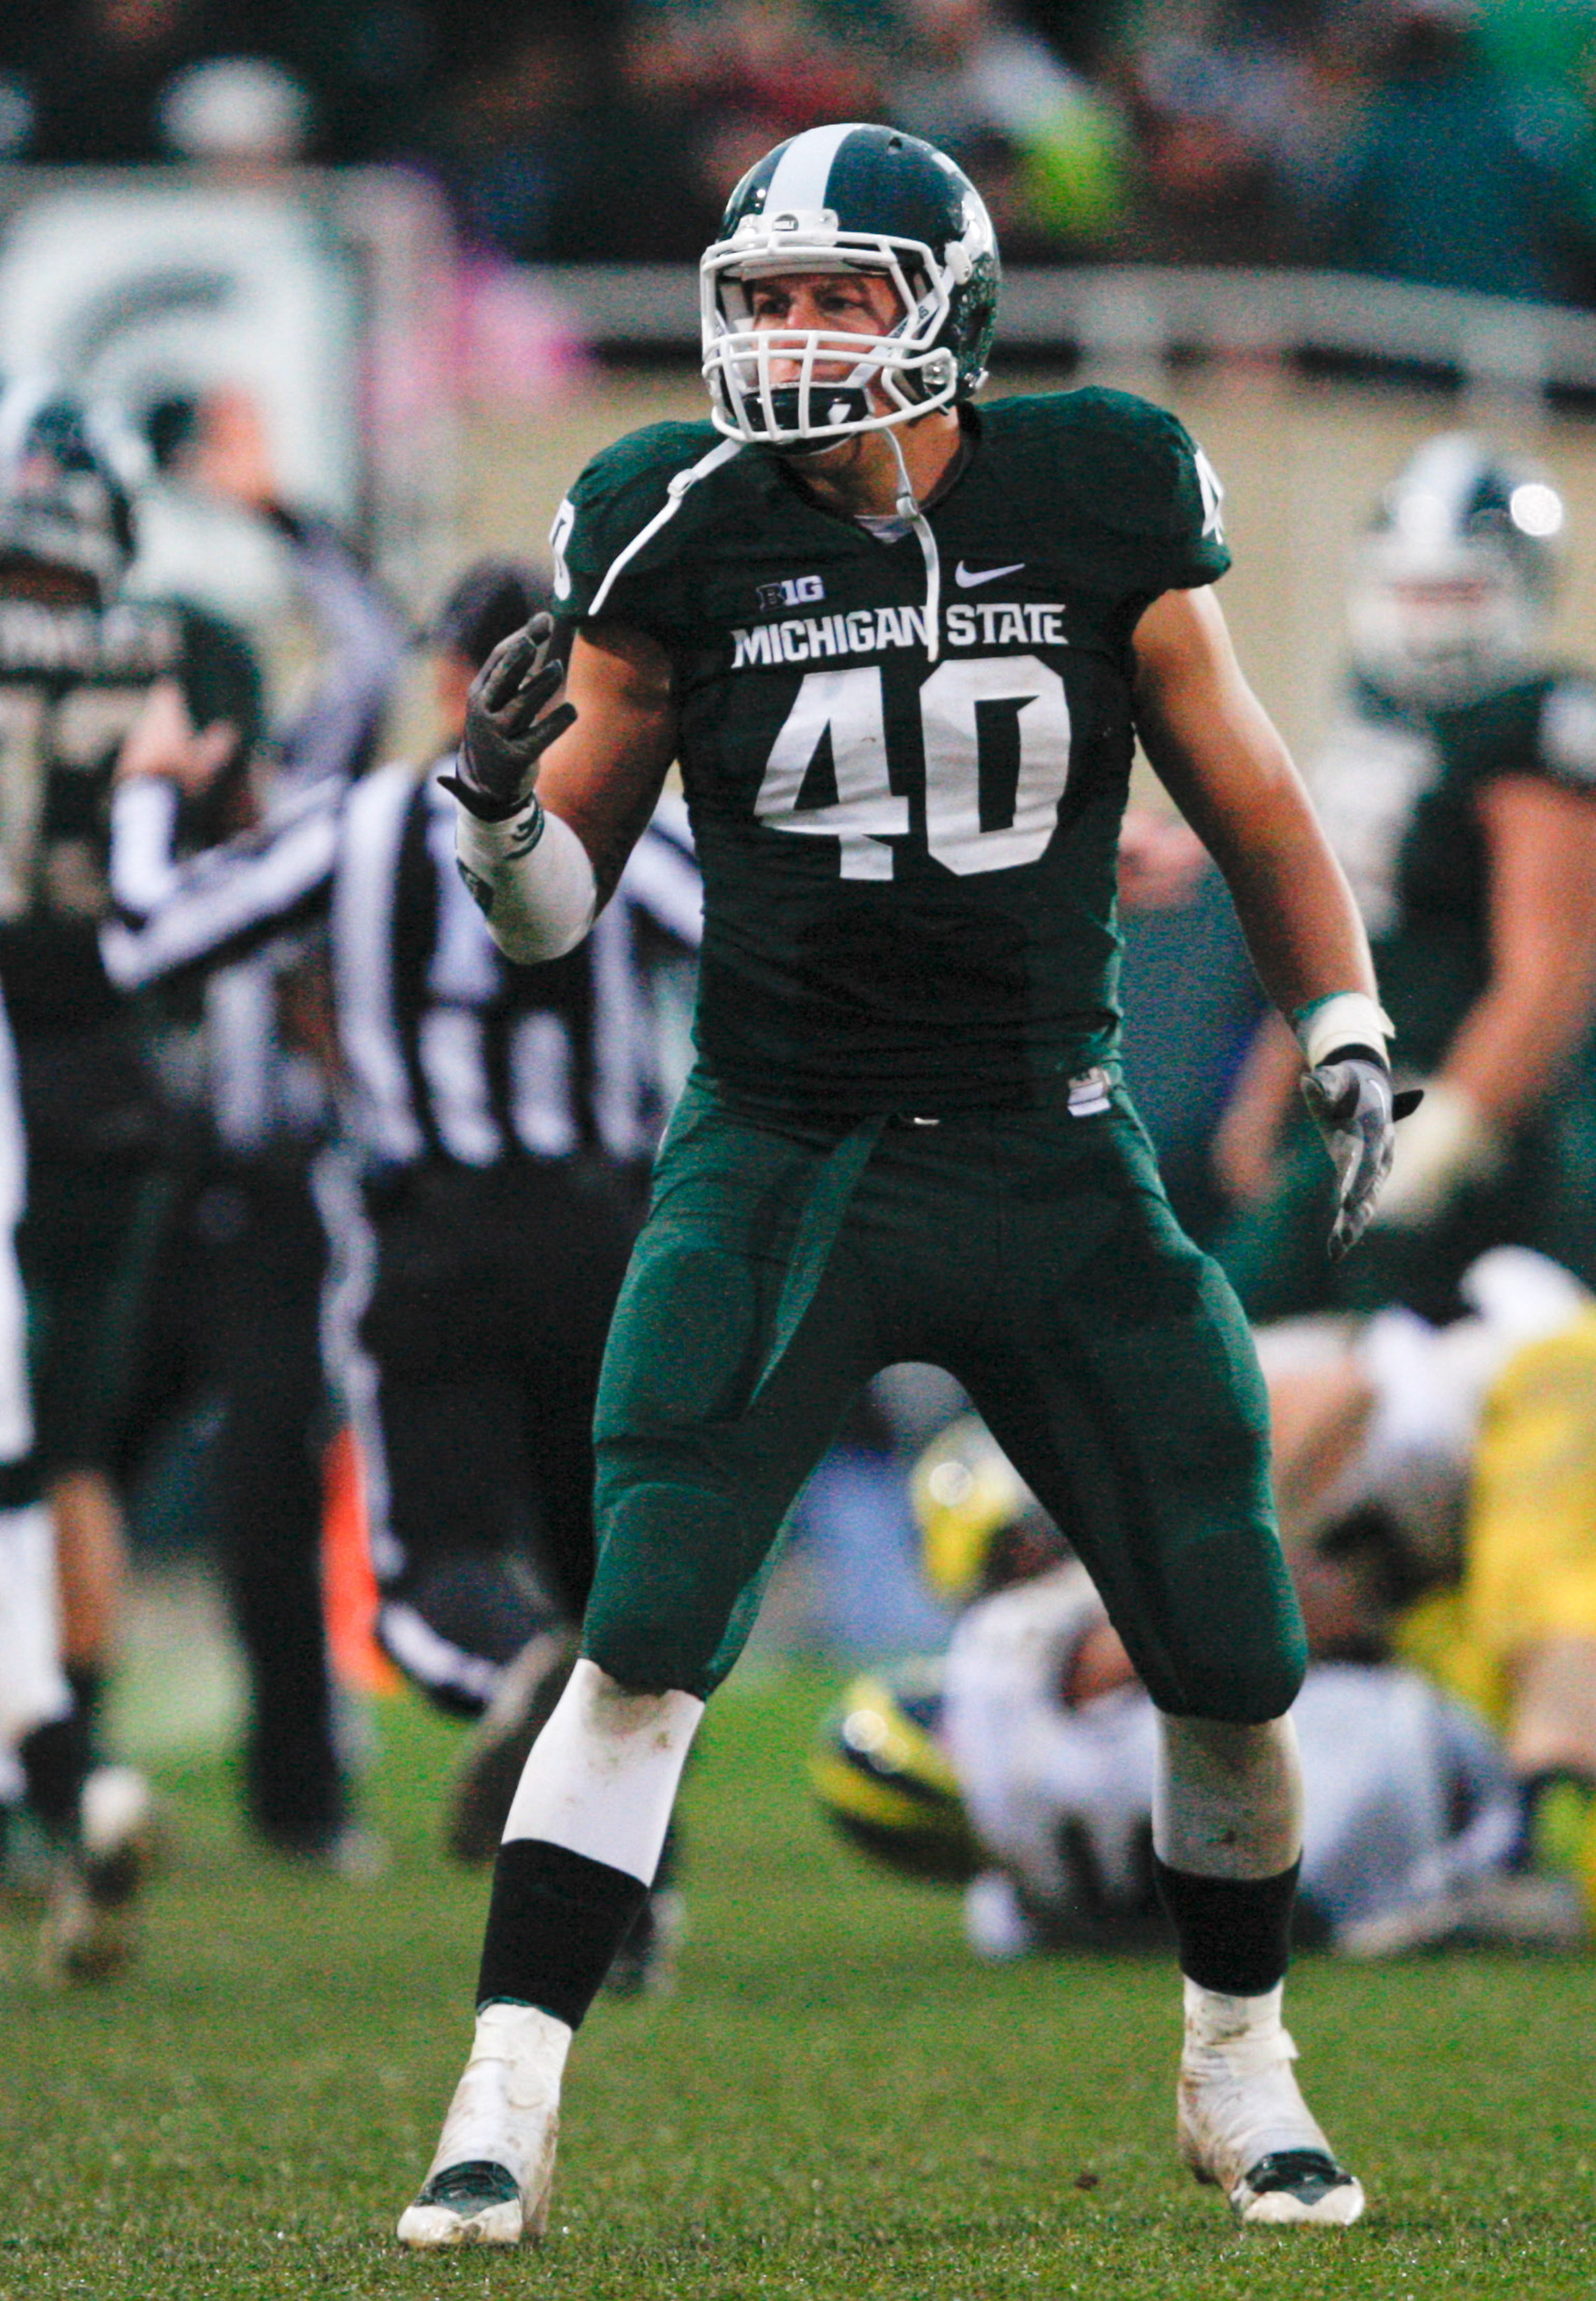 East-West Shrine Game 2014 roster: Max Bullough stars for West